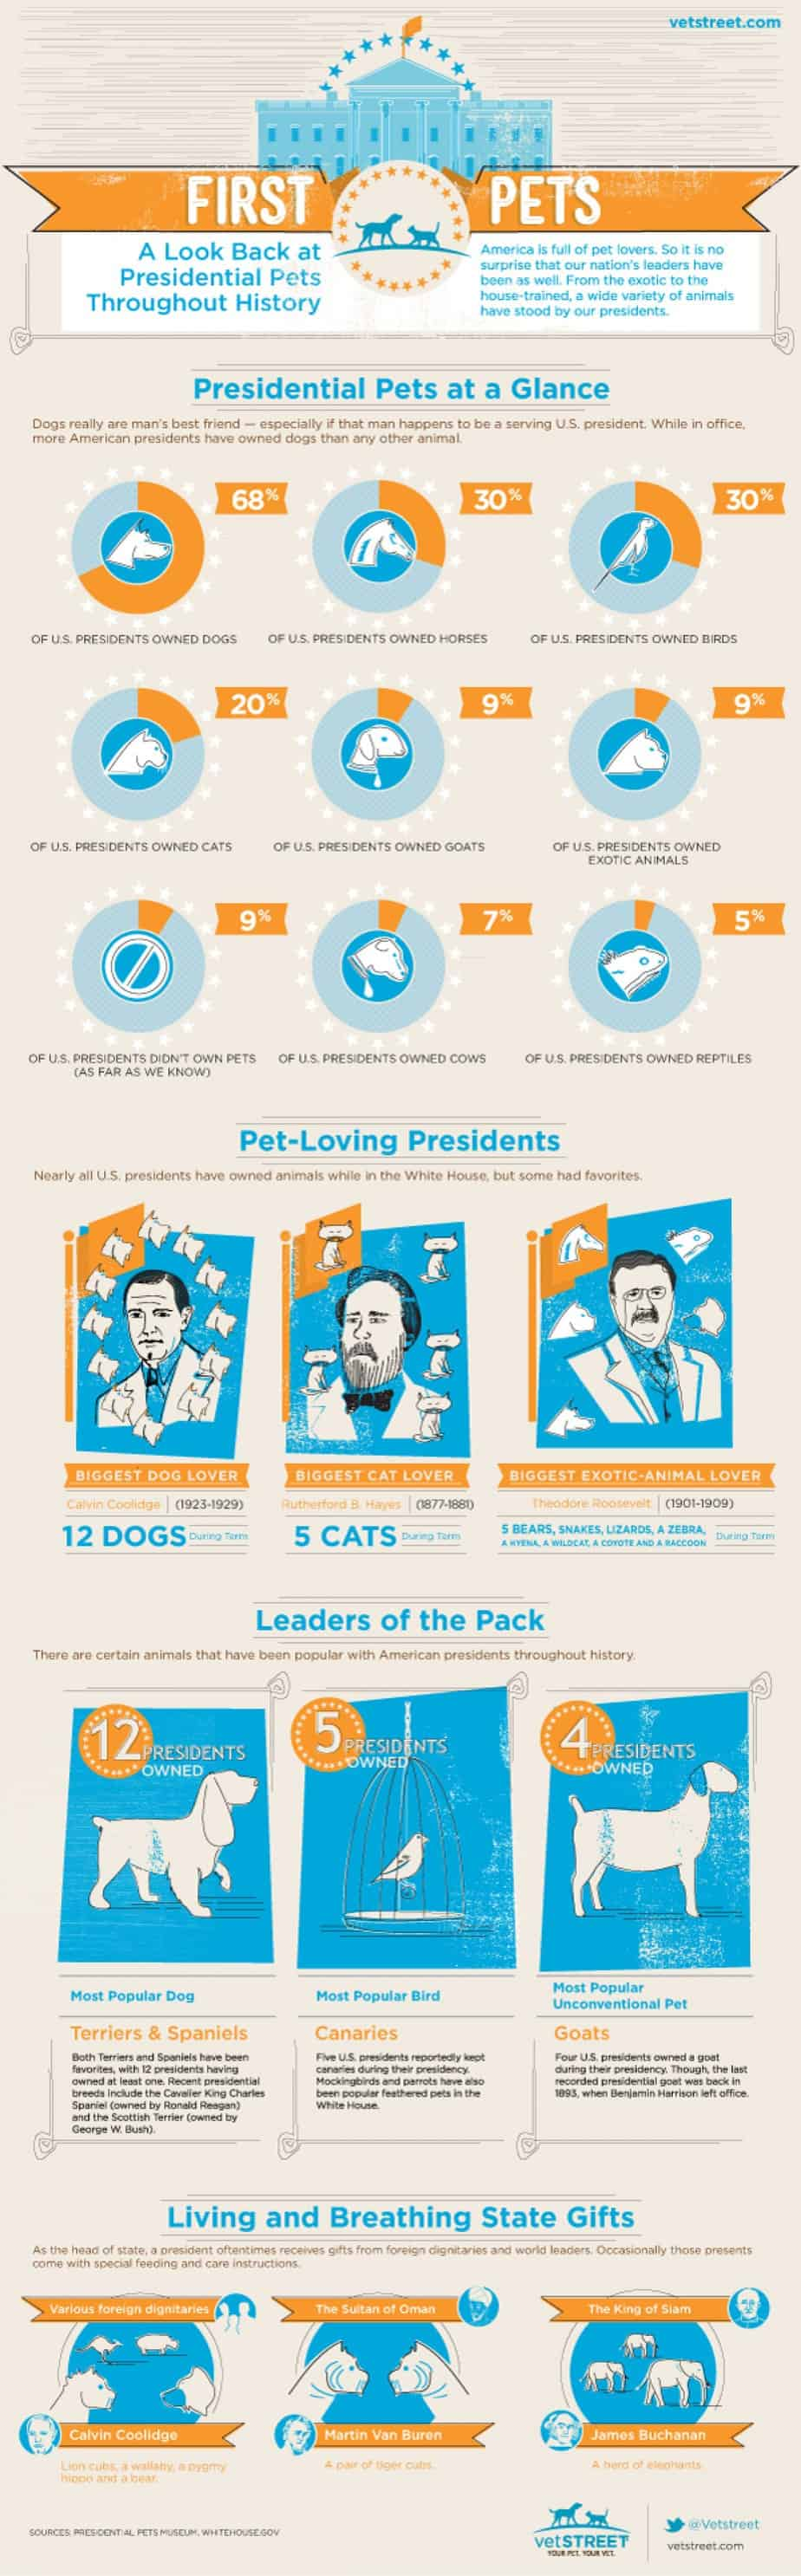 presidential-pets-an-infographic-history-of-animals-at-the-white-house_502919c0a447d_w1500